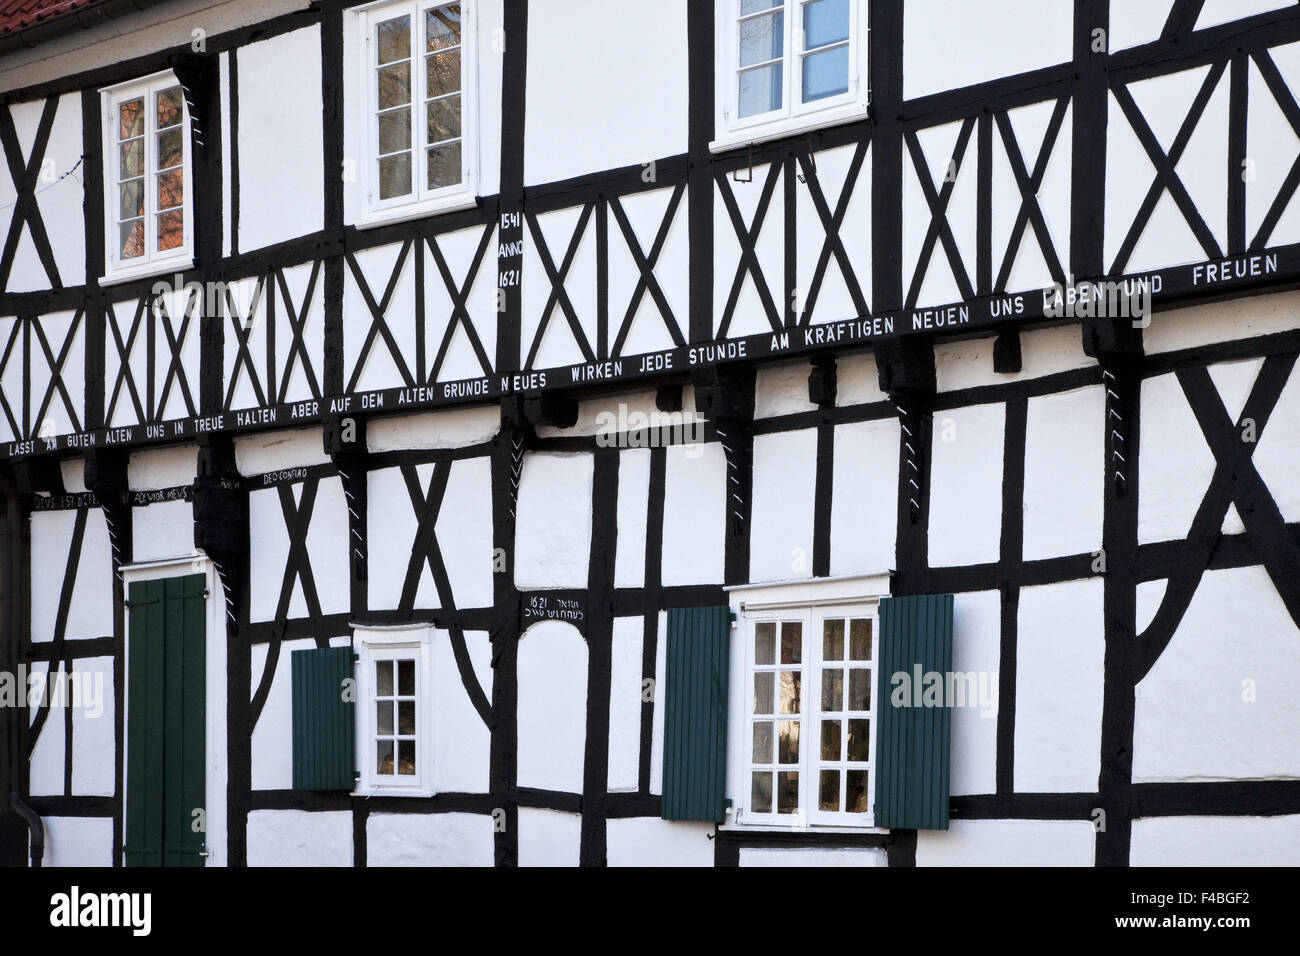 Detailed half-timbered house, Wetter Wengern. - Stock Image